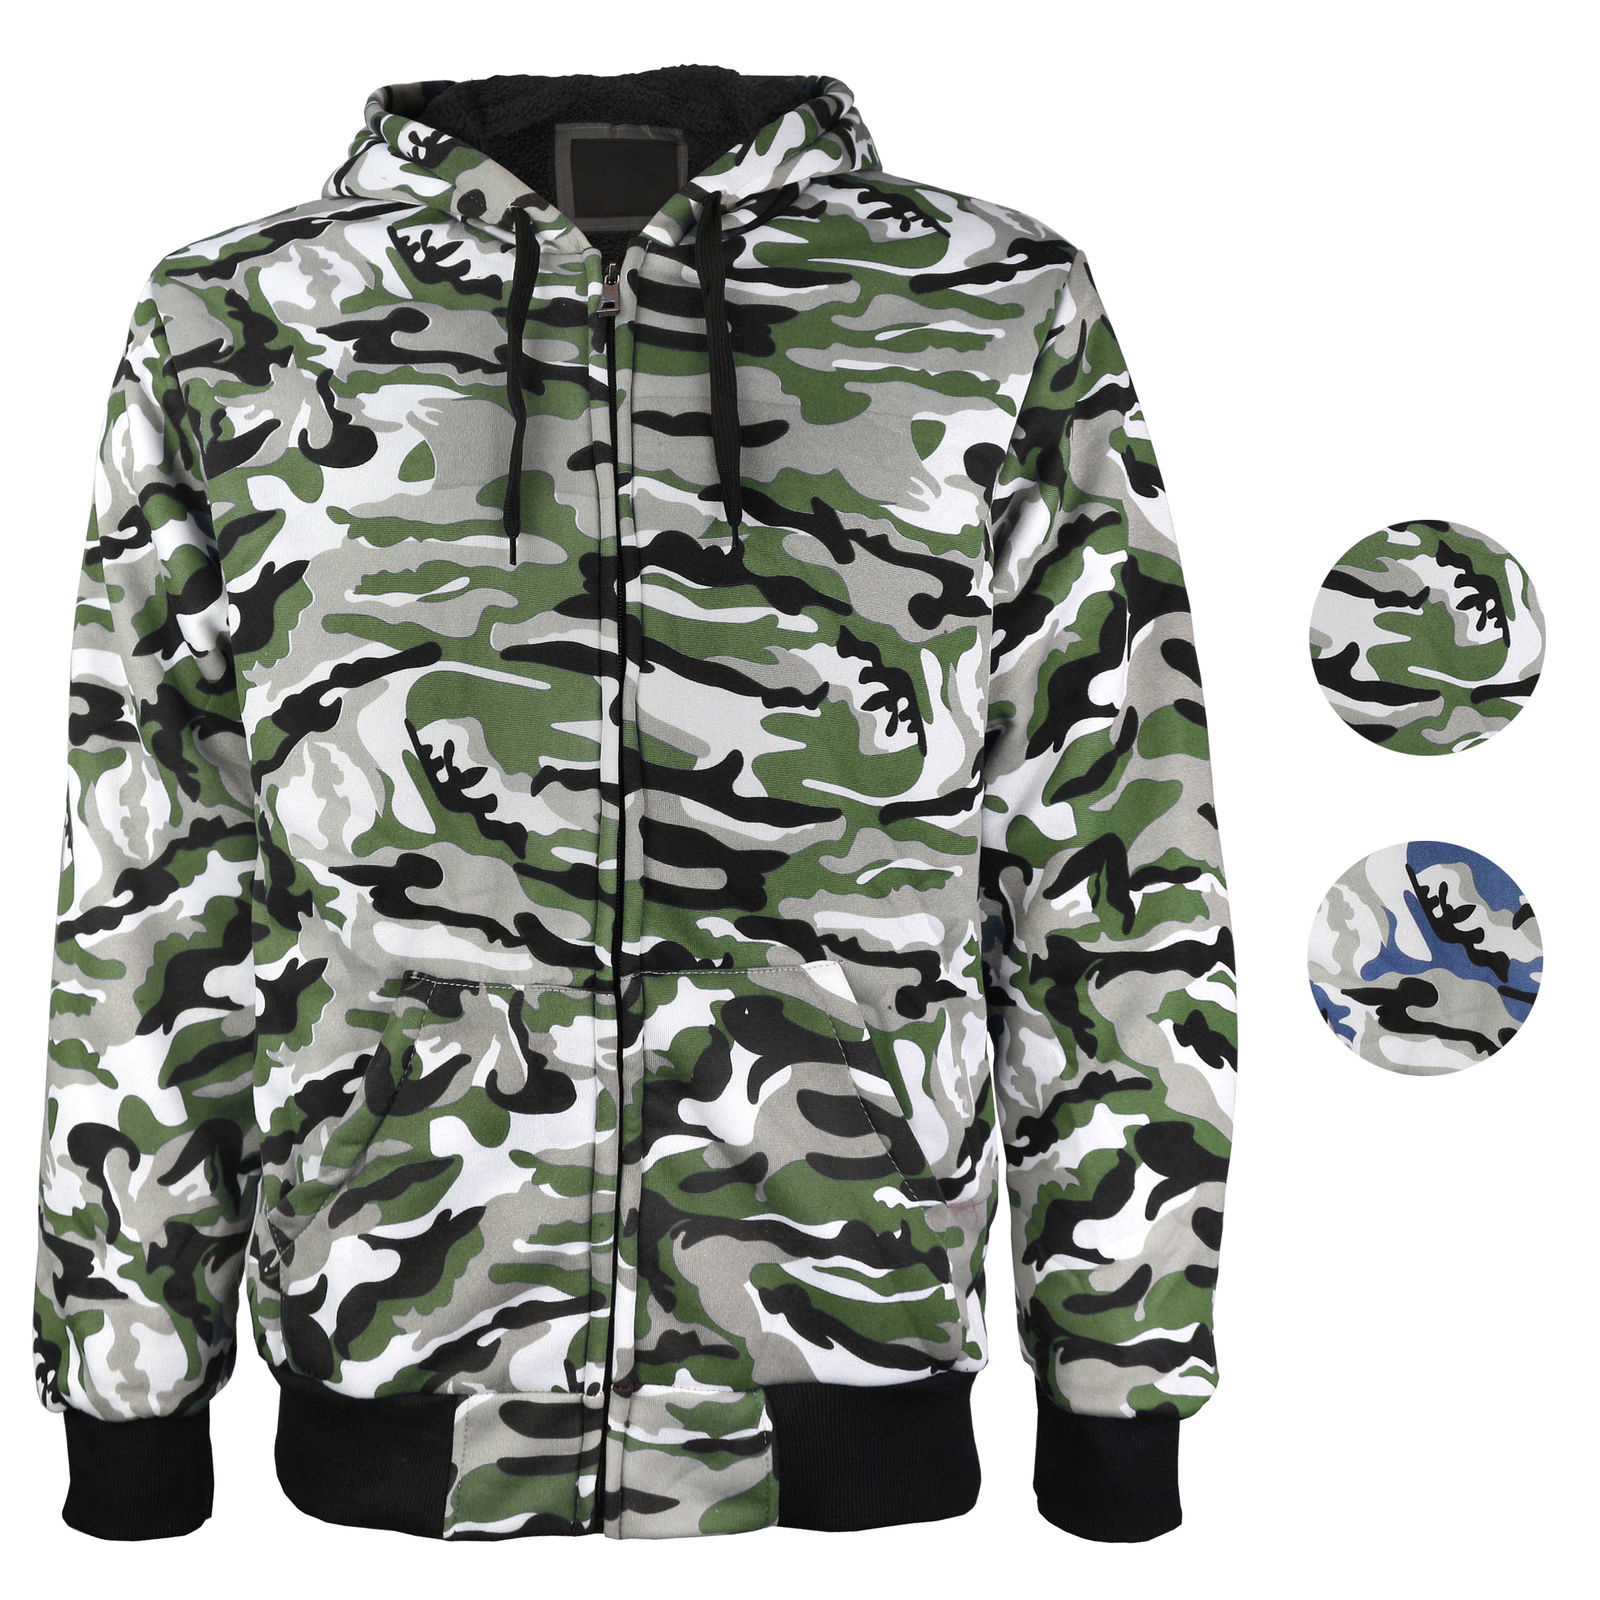 vkwear Men's Athletic Soft Sherpa Lined Slim Fit Camo Zip Hoodie Jacket